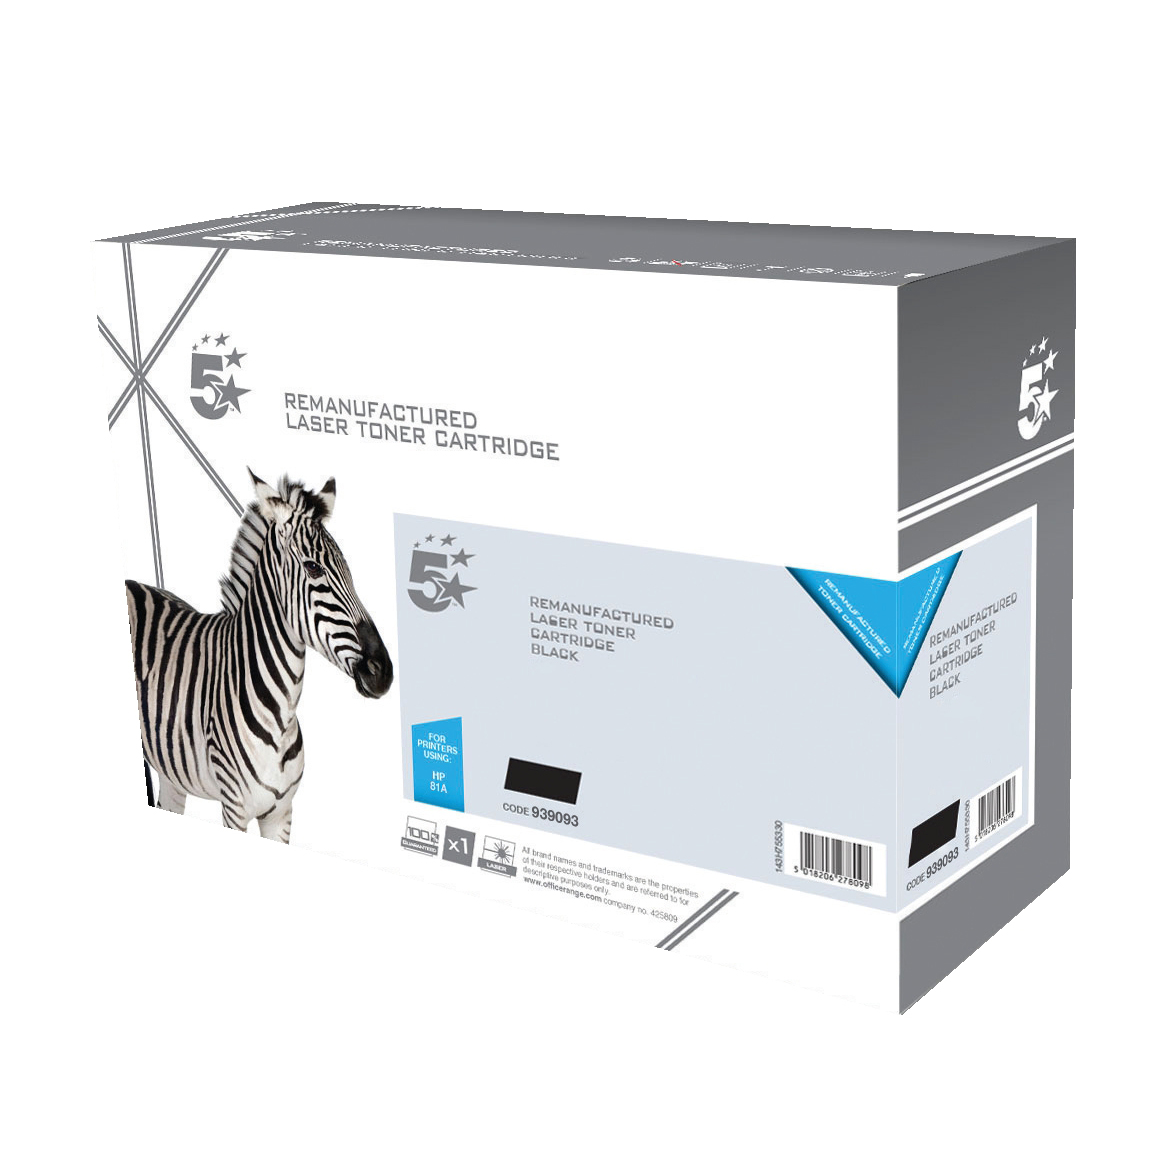 5 Star Remanufactured Laser Toner Cartridge High Yield Page Life 5000pp Cyan [HP 410X CF411X Alternative]